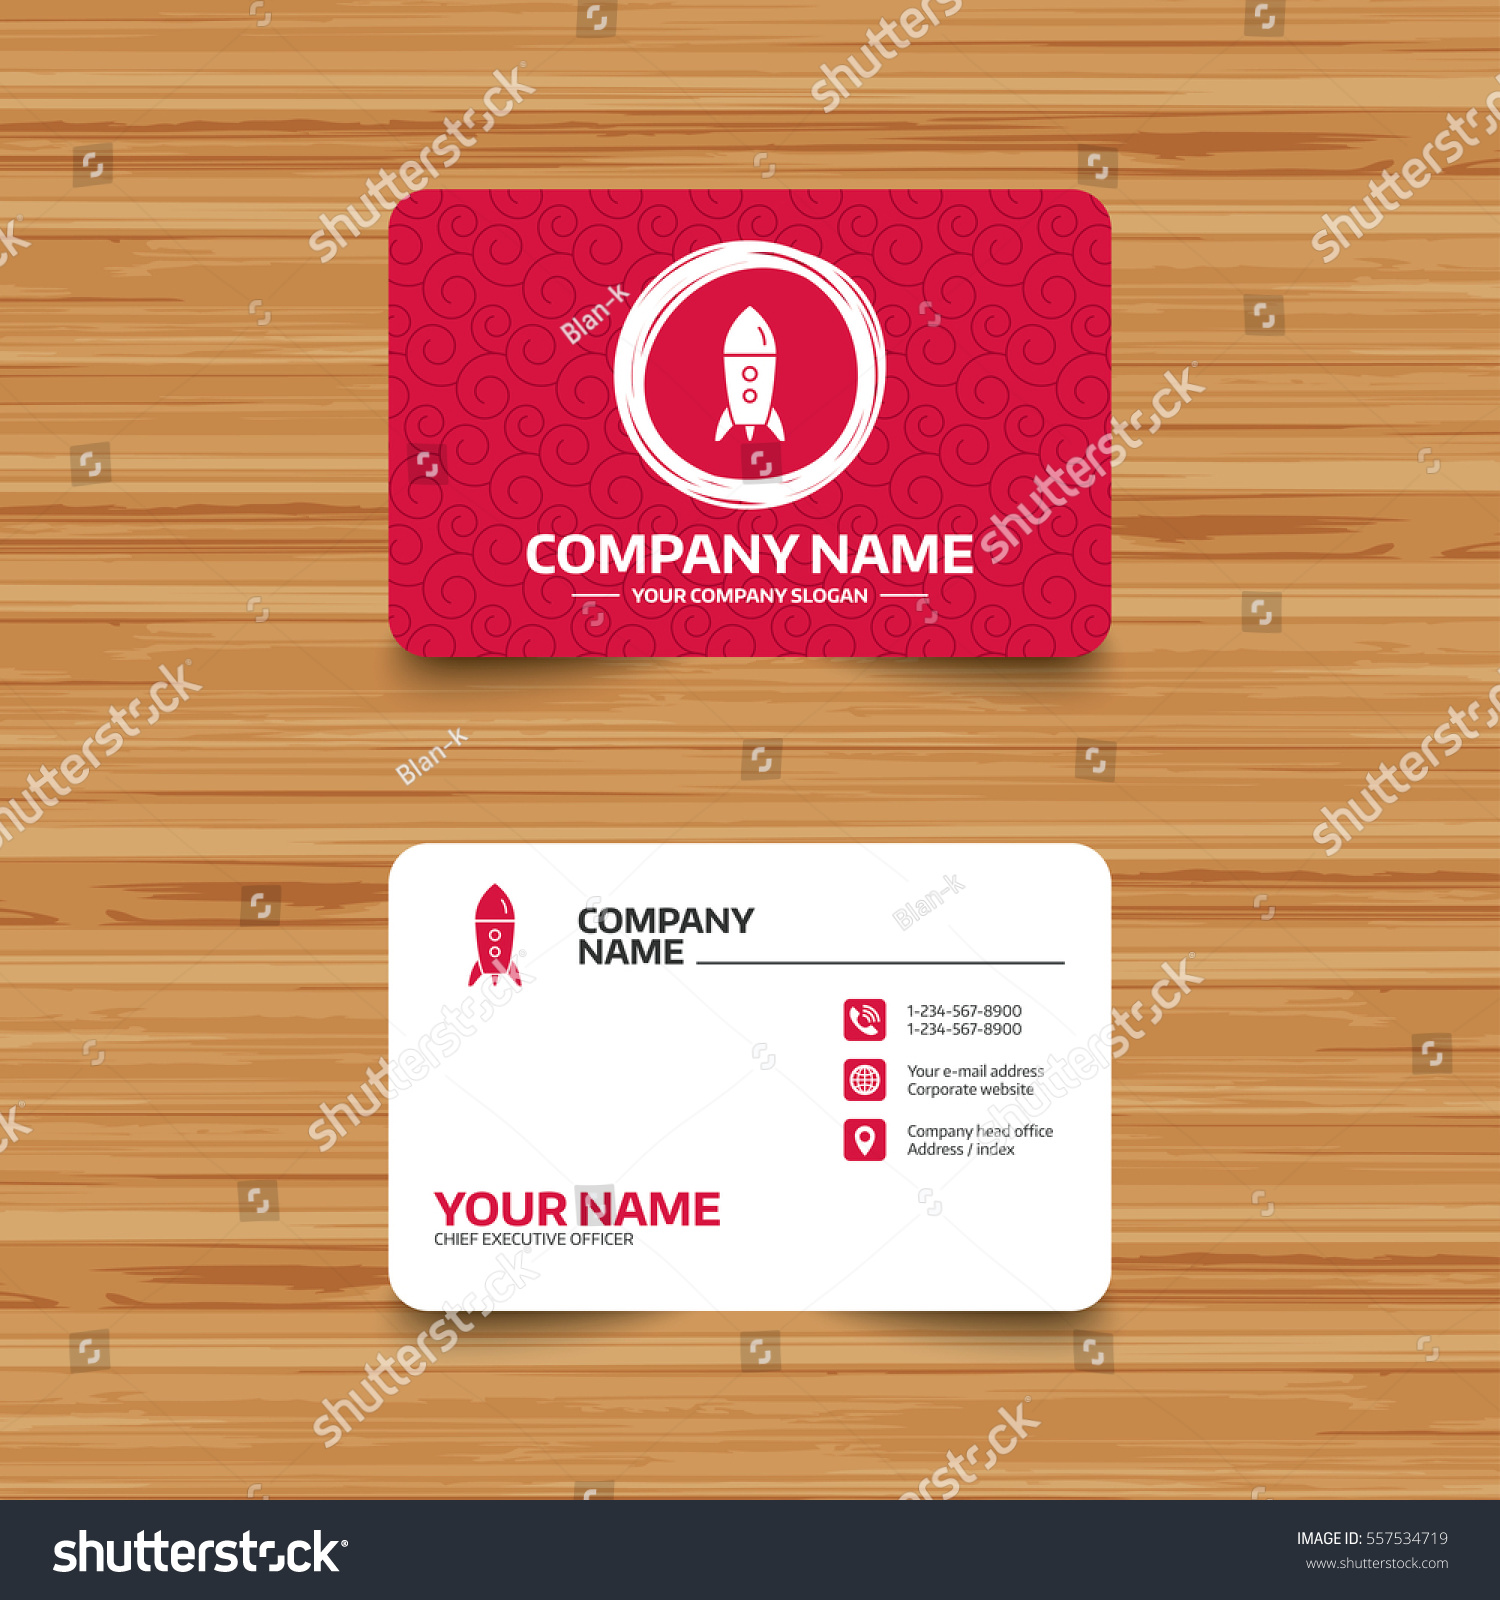 Business Card Template Texture Start Icon Stock Vector 557534719 ...